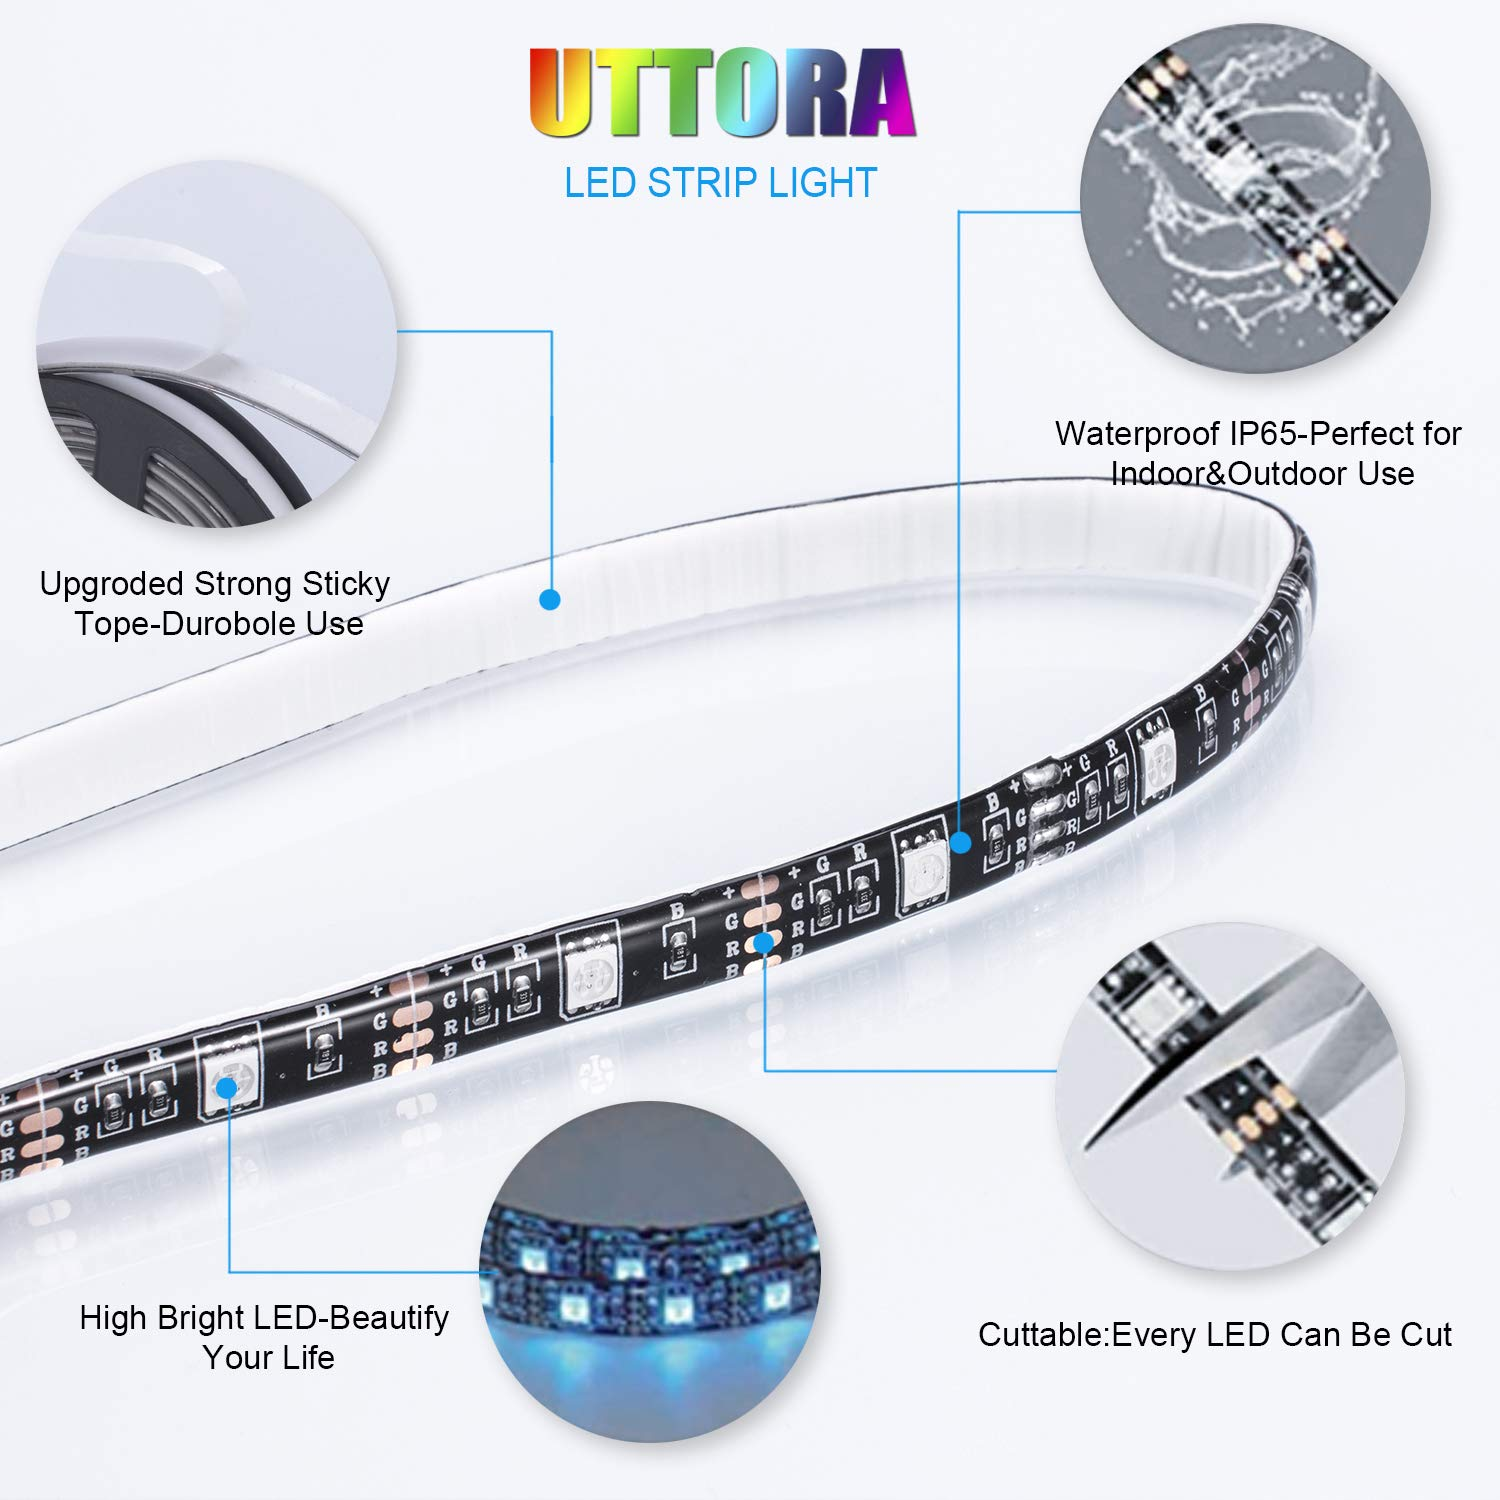 LED TV Backlight,UTTORA 2M USB Remote Control LED Strip Lights with 16 Colors & 4 Dynamic Mode for 40 to 60 Inch HDTV, PC Monitor, Flat Screen TV [Energy Class A+]